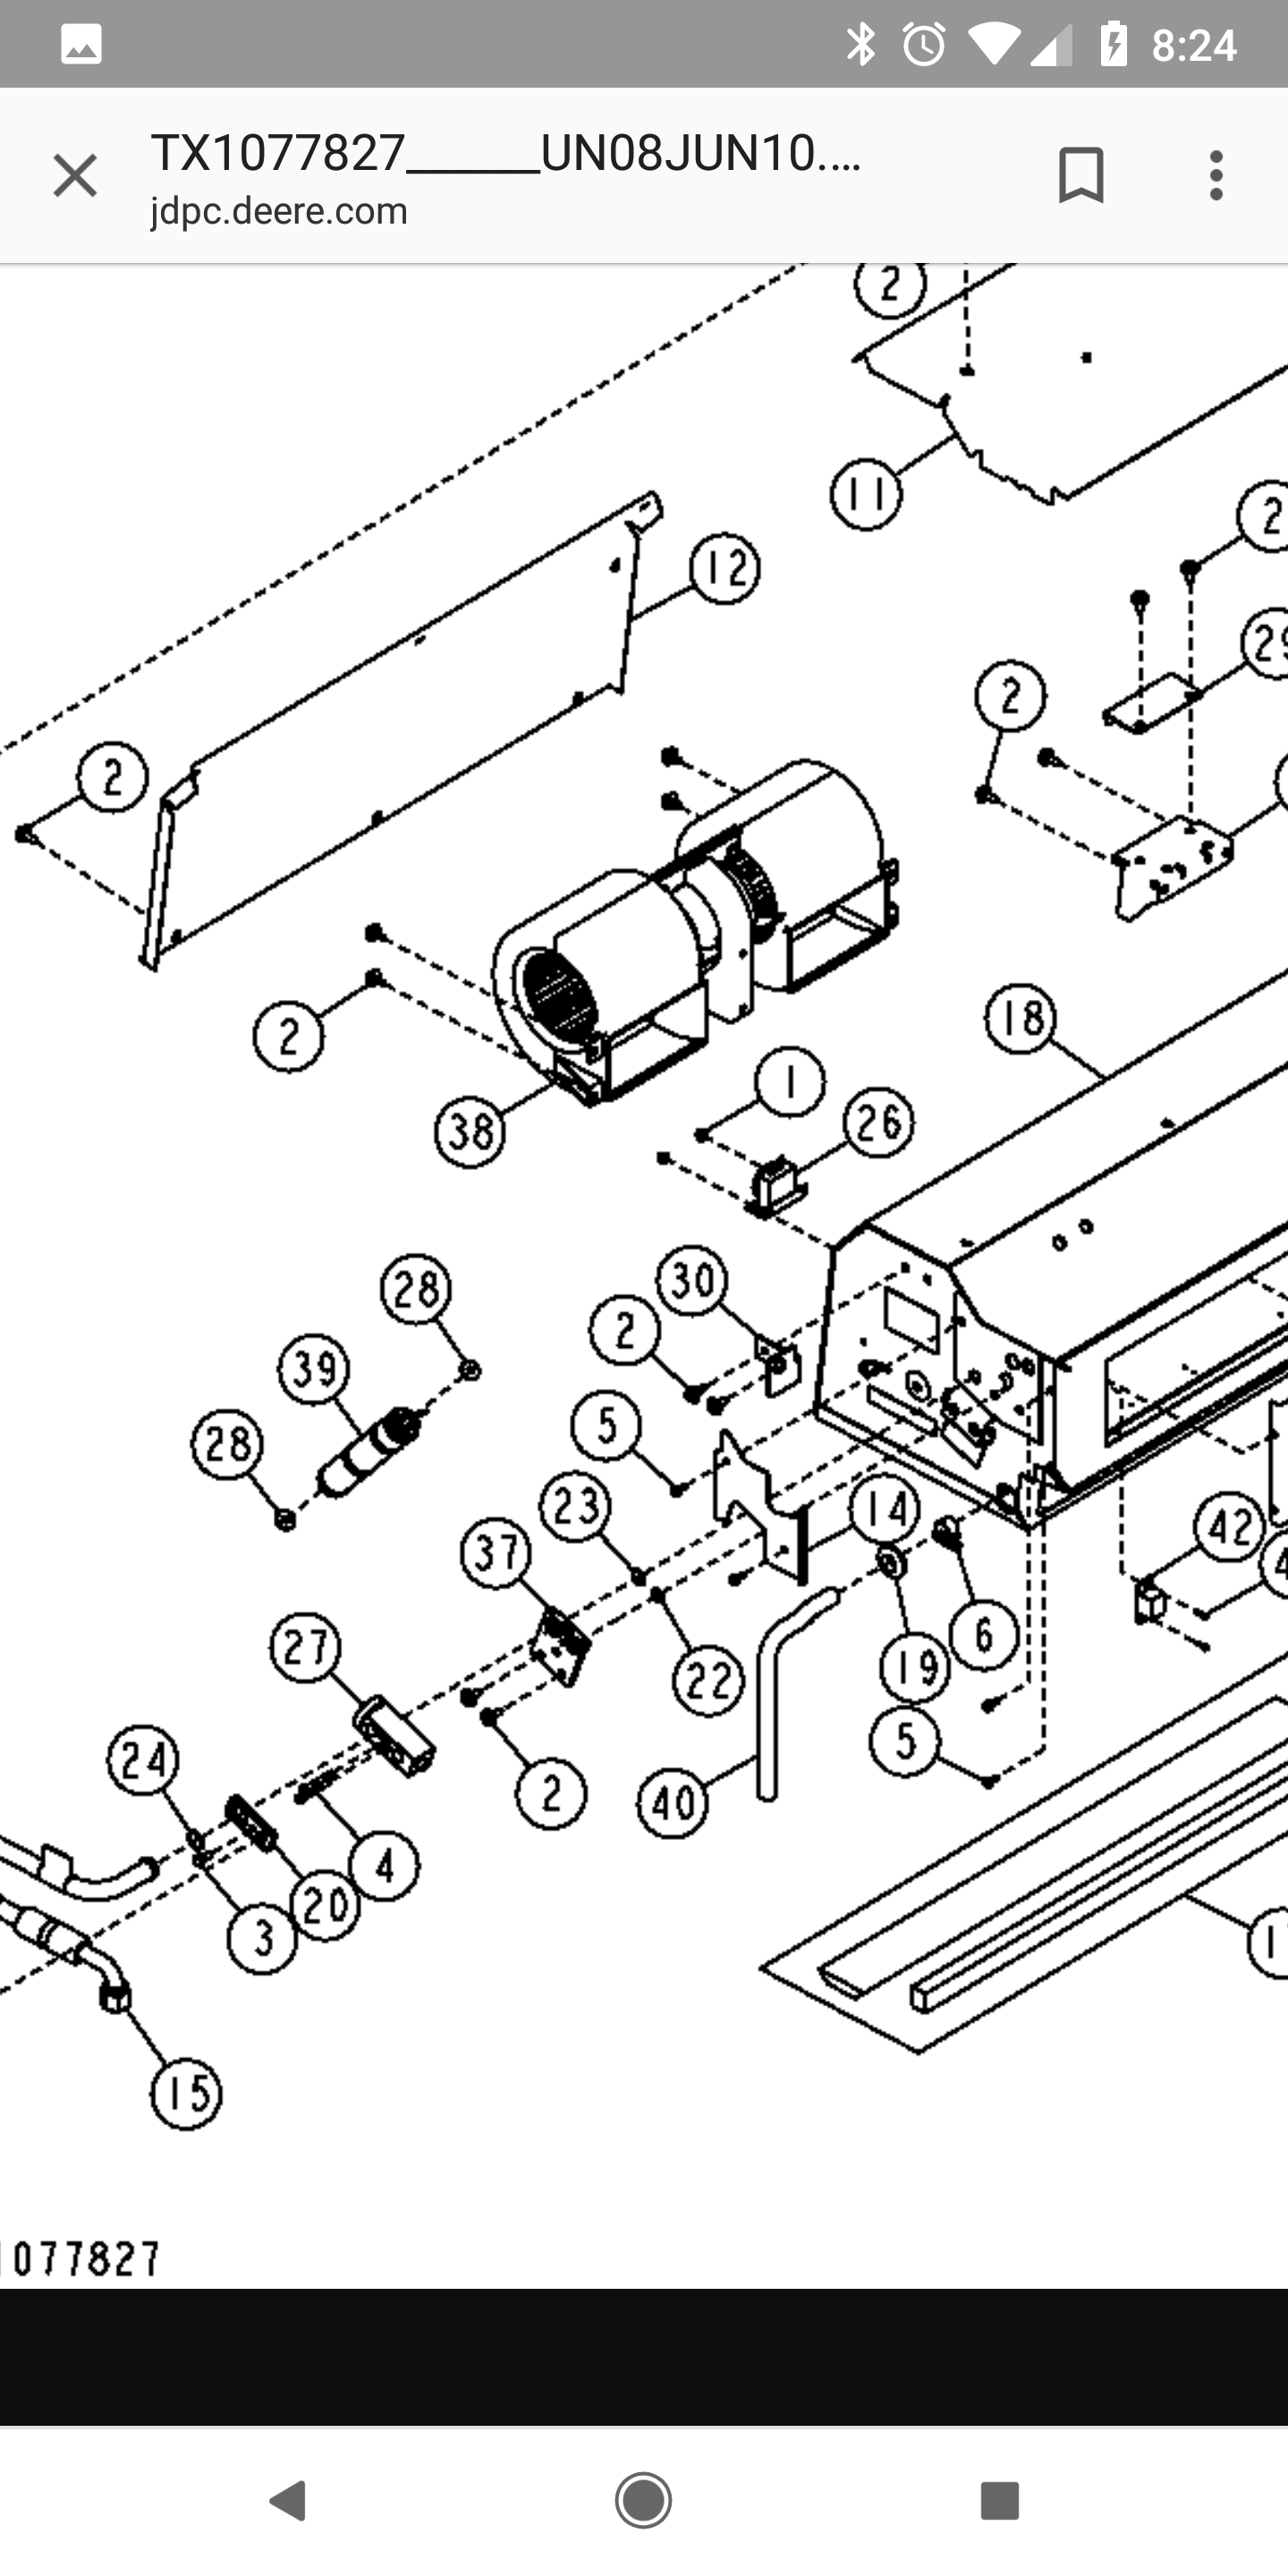 I Have To Replace The Expansion Valve Drier On Deere 700j Dozer John 650j Wiring Diagram 199366ad 33d9 400b B4f0 Cf0e5aed0151 Screenshot 20180718 082453